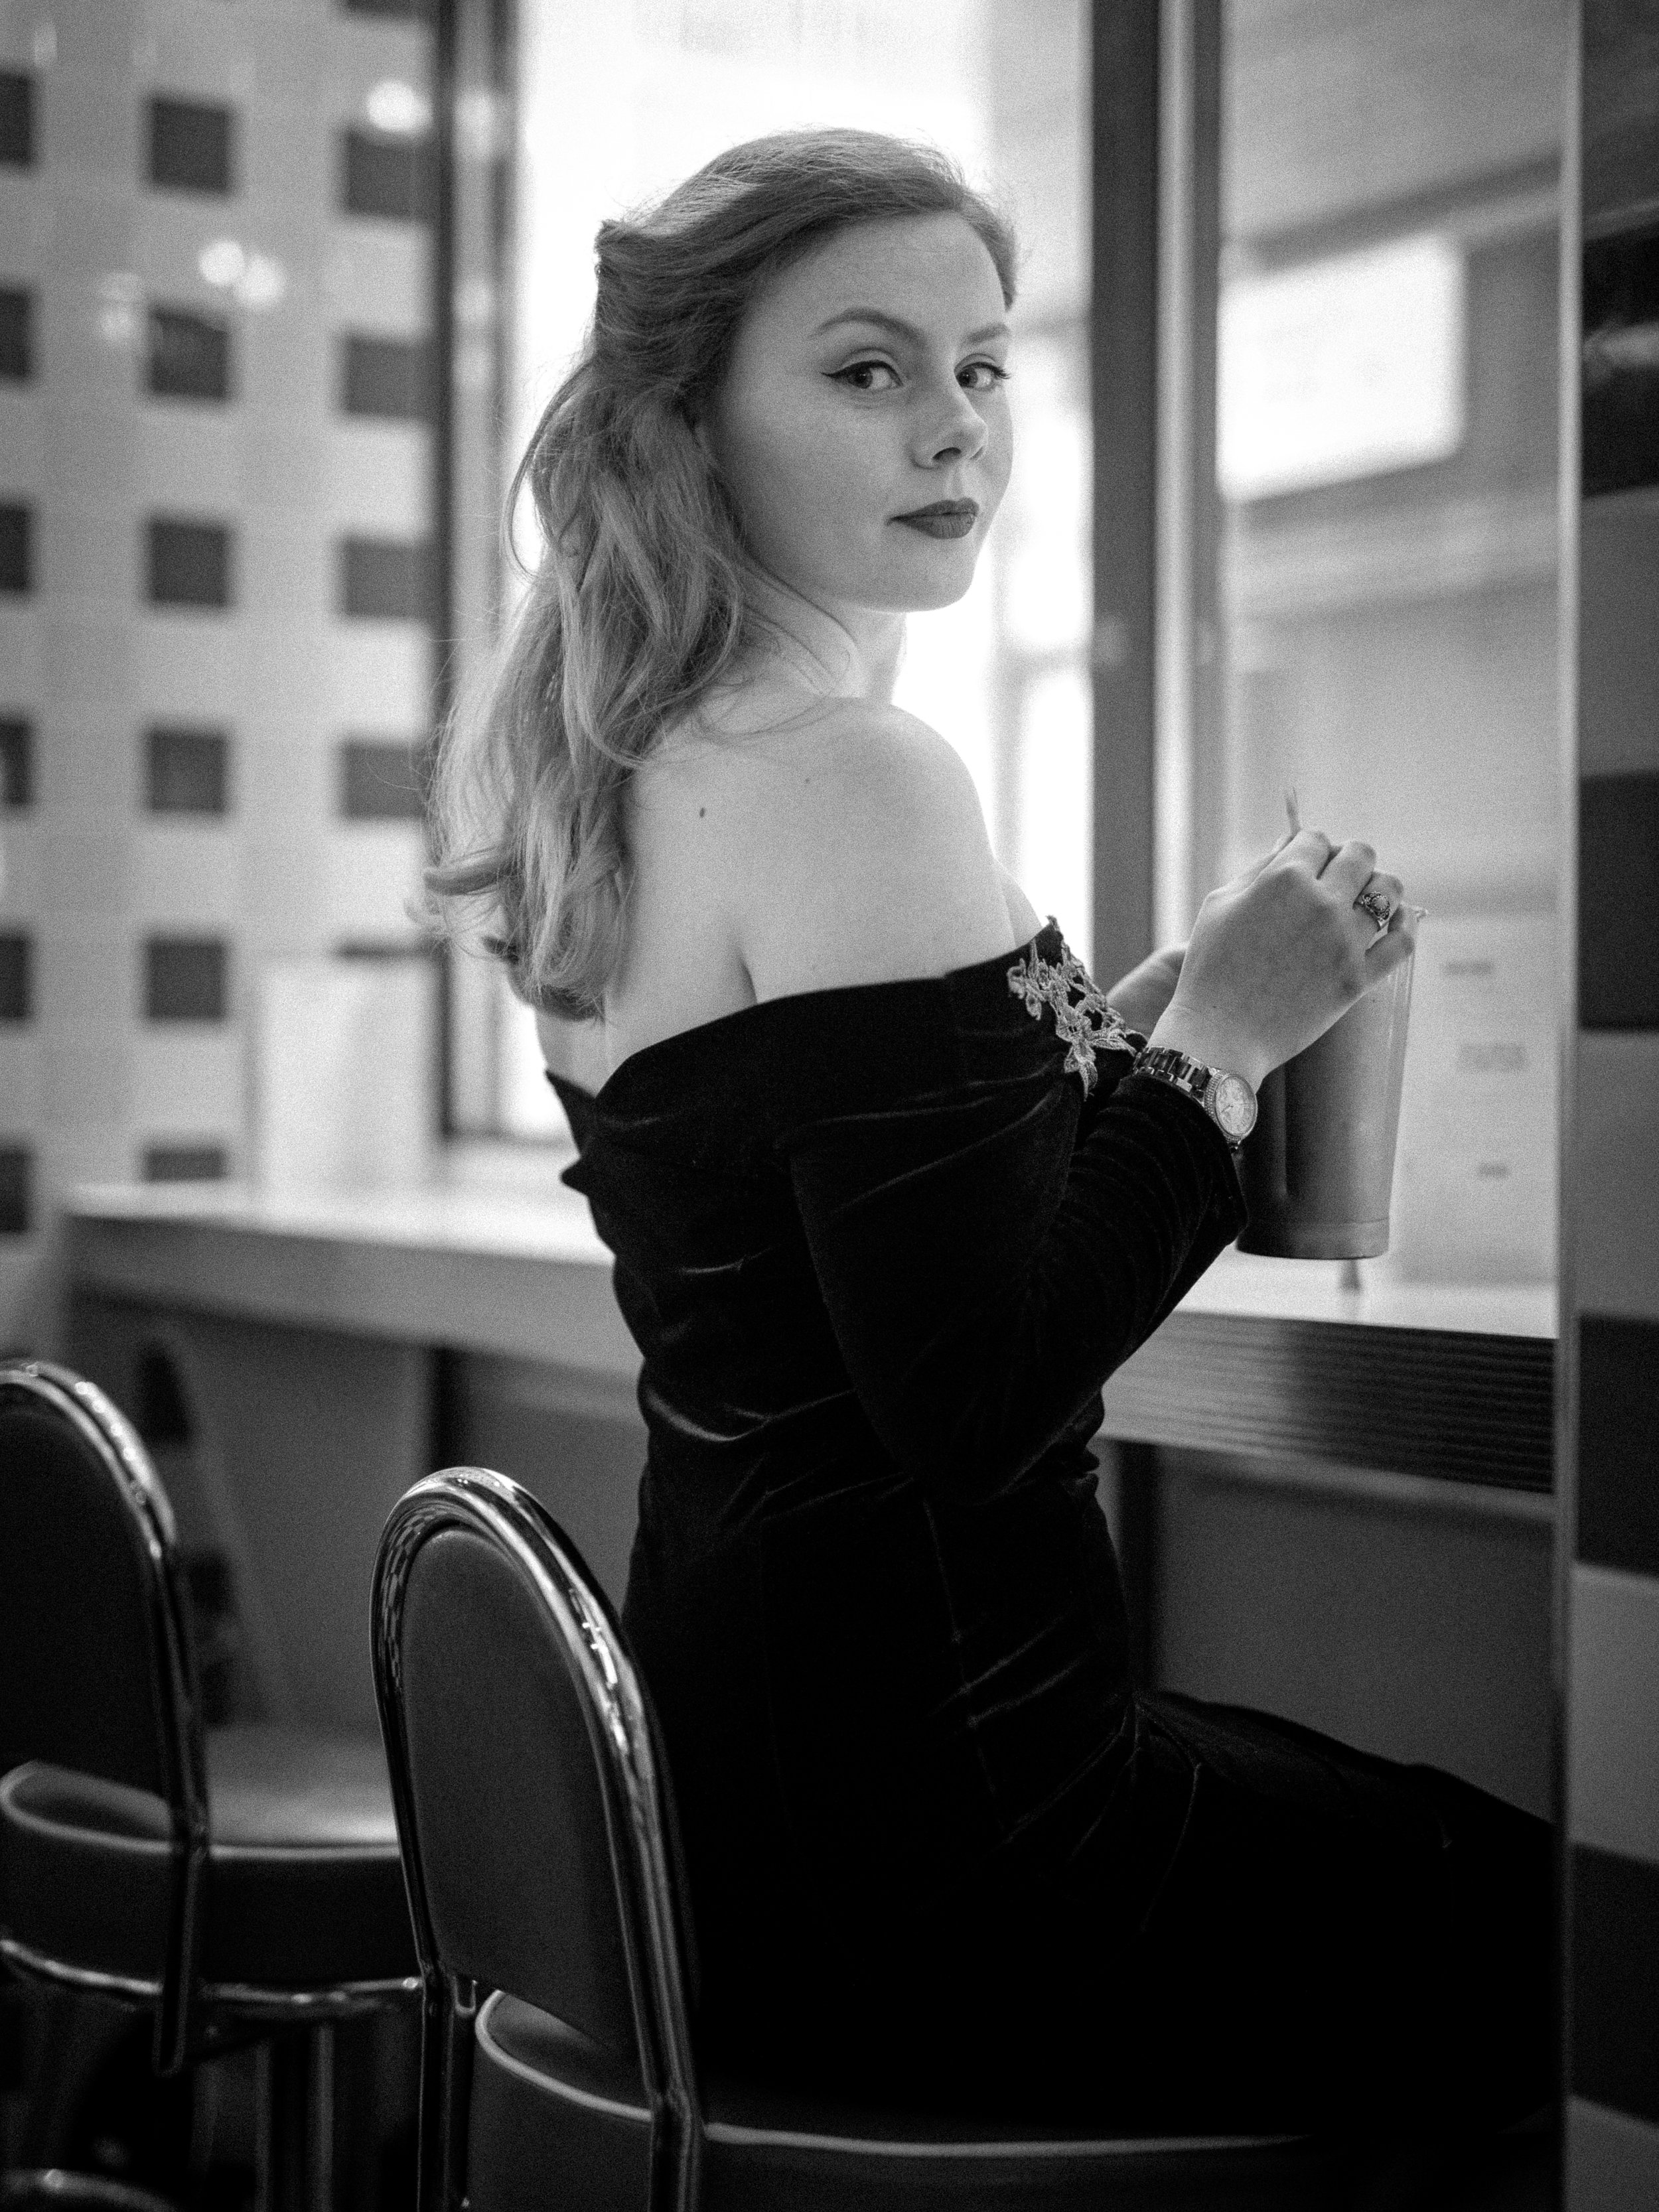 1950s Diner Black and White Portrait Looking Back